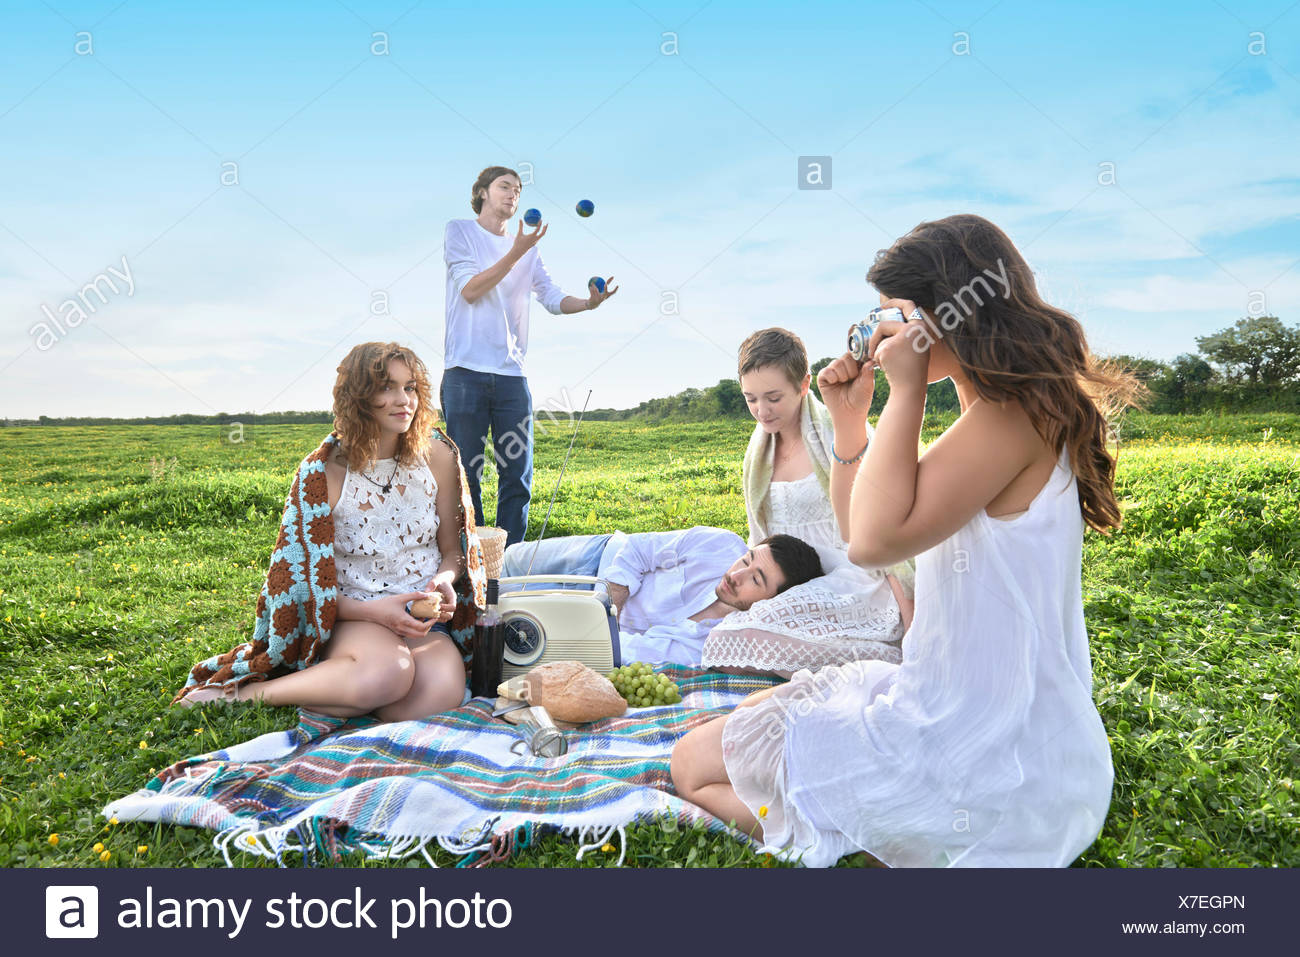 Group of young adult friends having a picnic in field - Stock Image